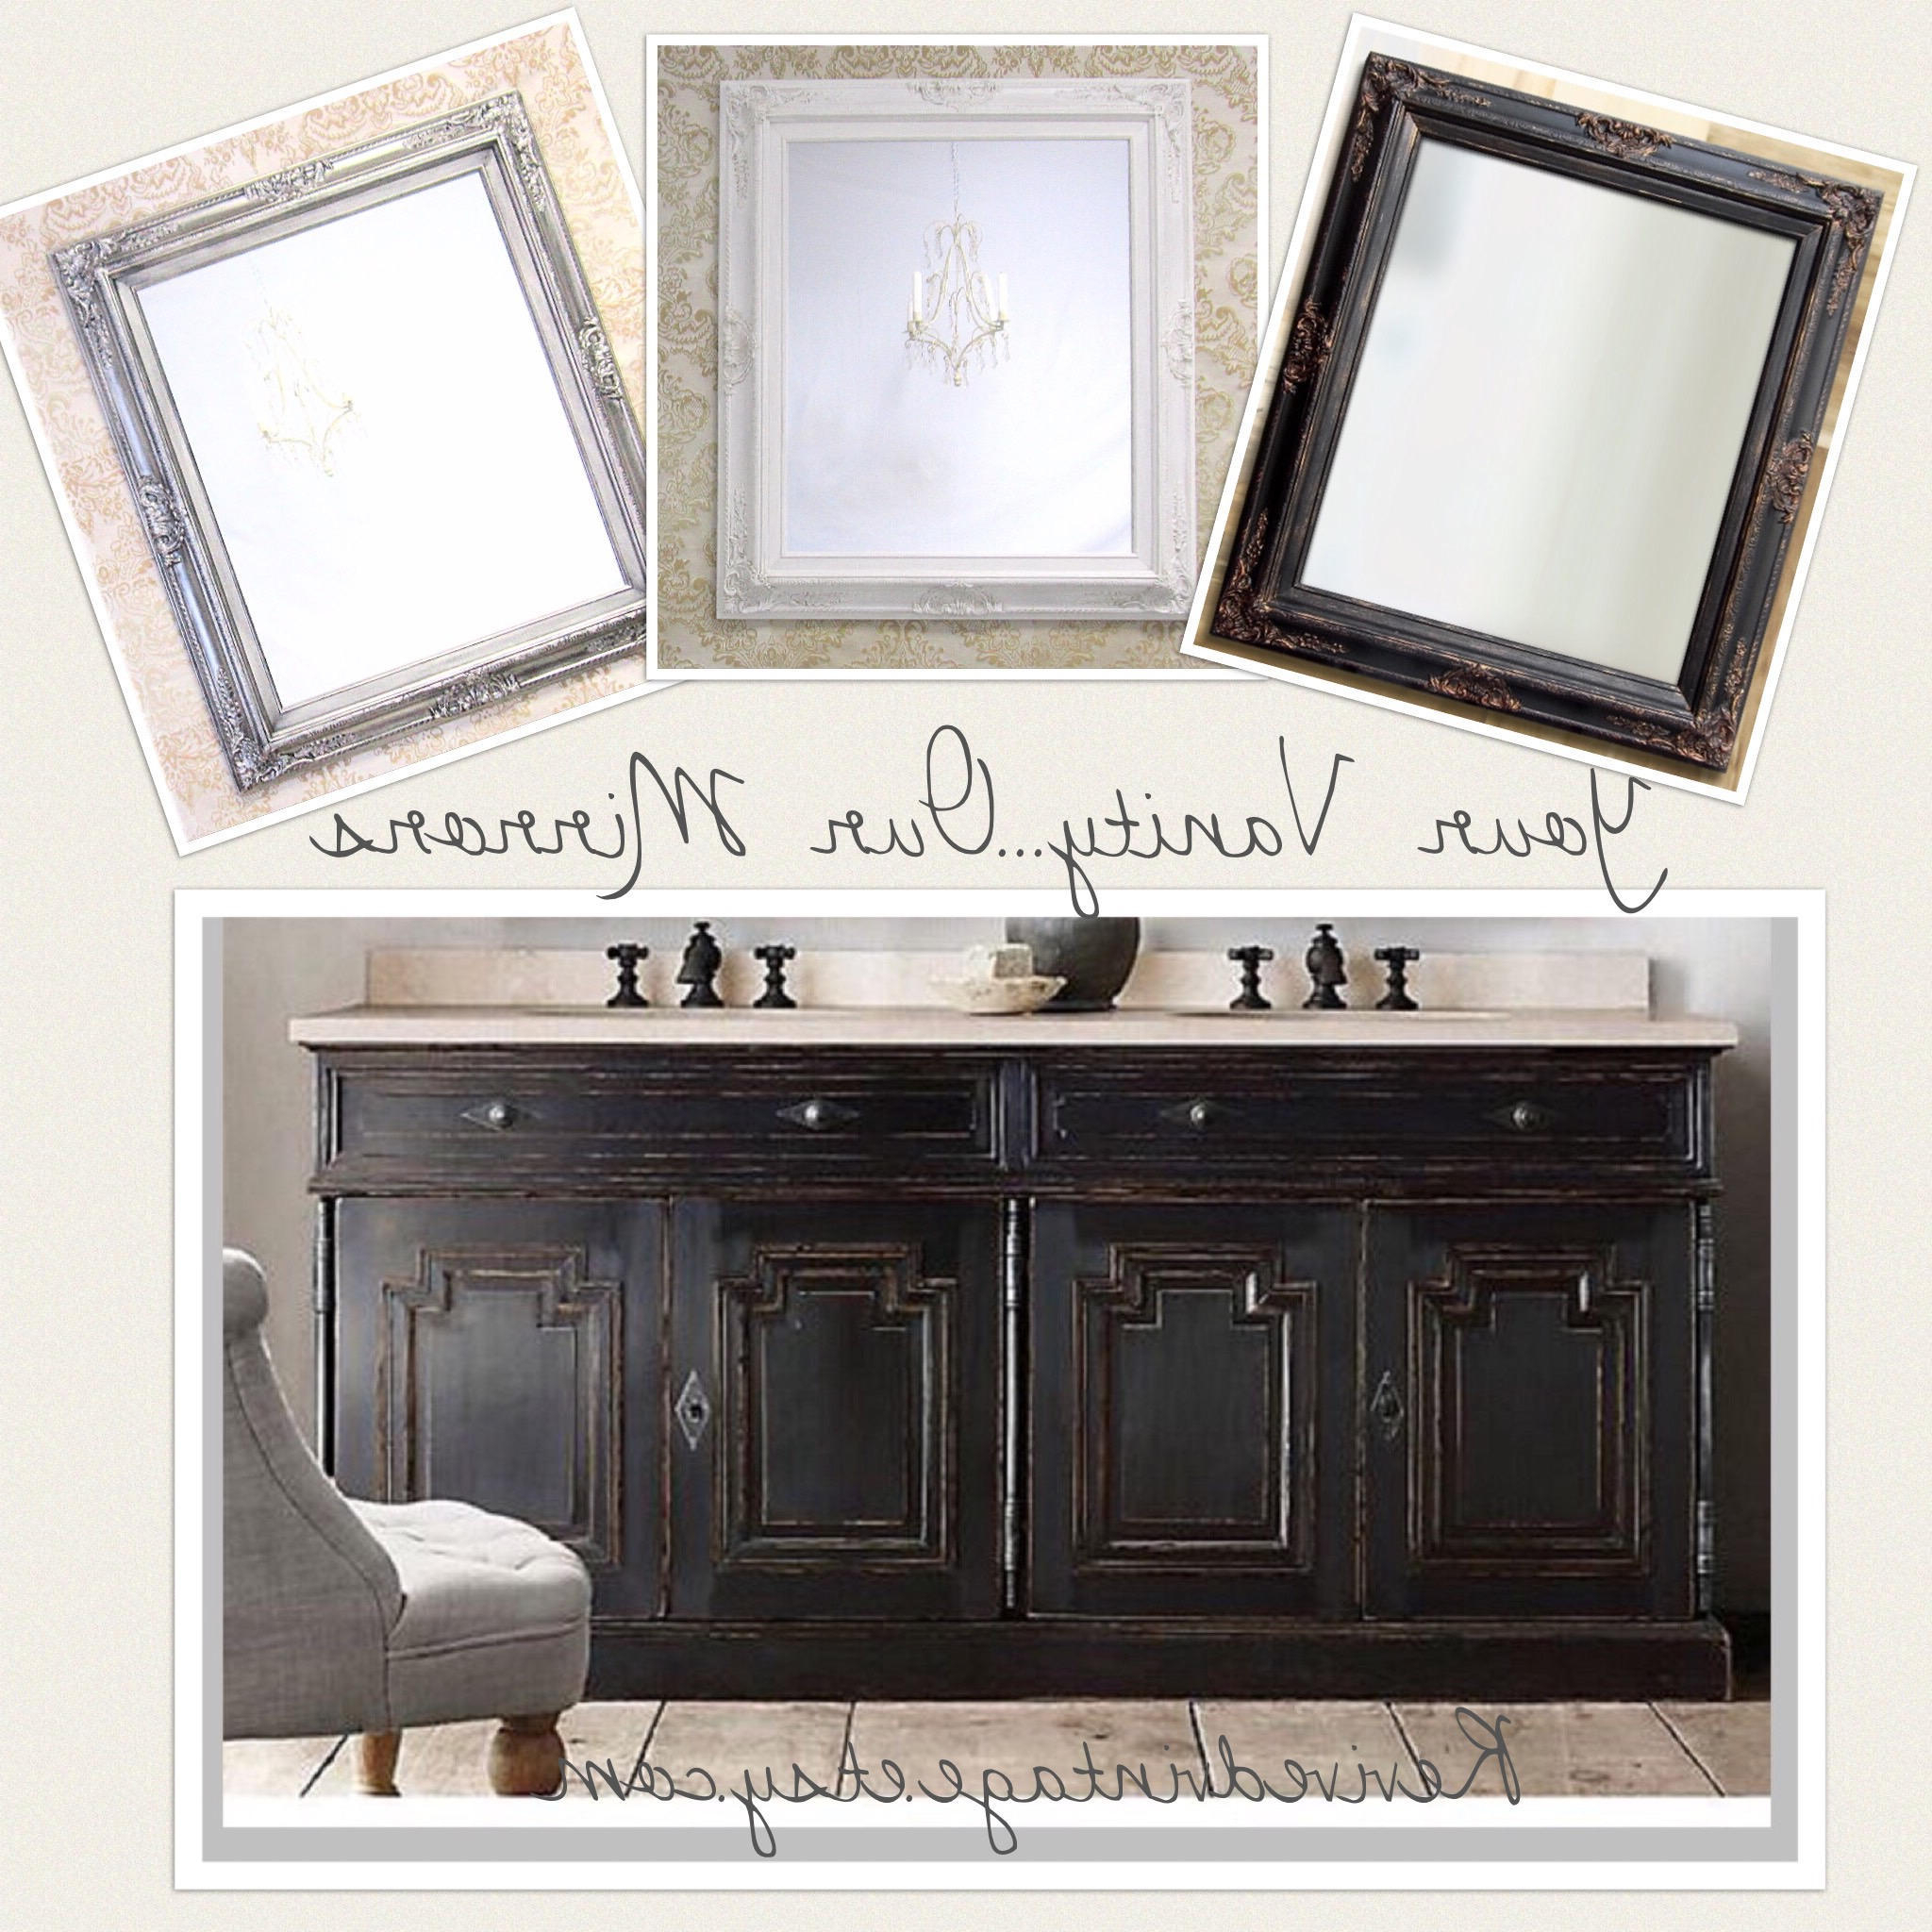 "Brushed Nickel Wall Mirrors For Bathroom With Regard To Favorite Bathroom Mirror Mirrors Brushed Nickel Accents Framed Baroque Bathroom Vanity Wall Mirror 31""x27"" Decorative Ornate Unique Mirror Rectangle (View 19 of 20)"